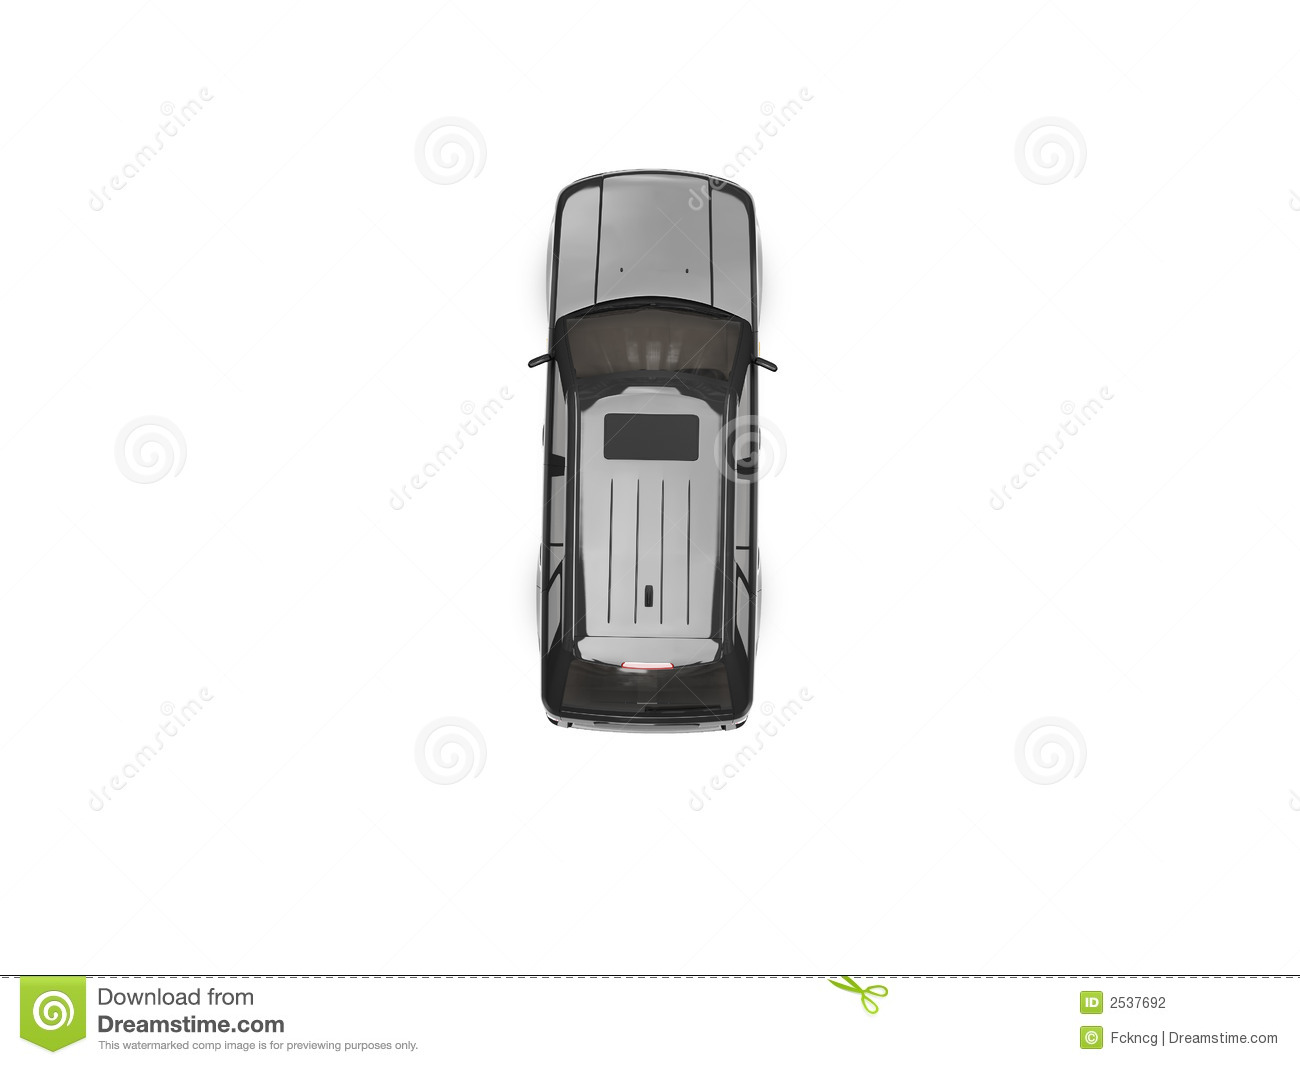 Auto von oben clipart banner royalty free Isolated Black Car Top View Stock Photography - Image: 2537692 banner royalty free